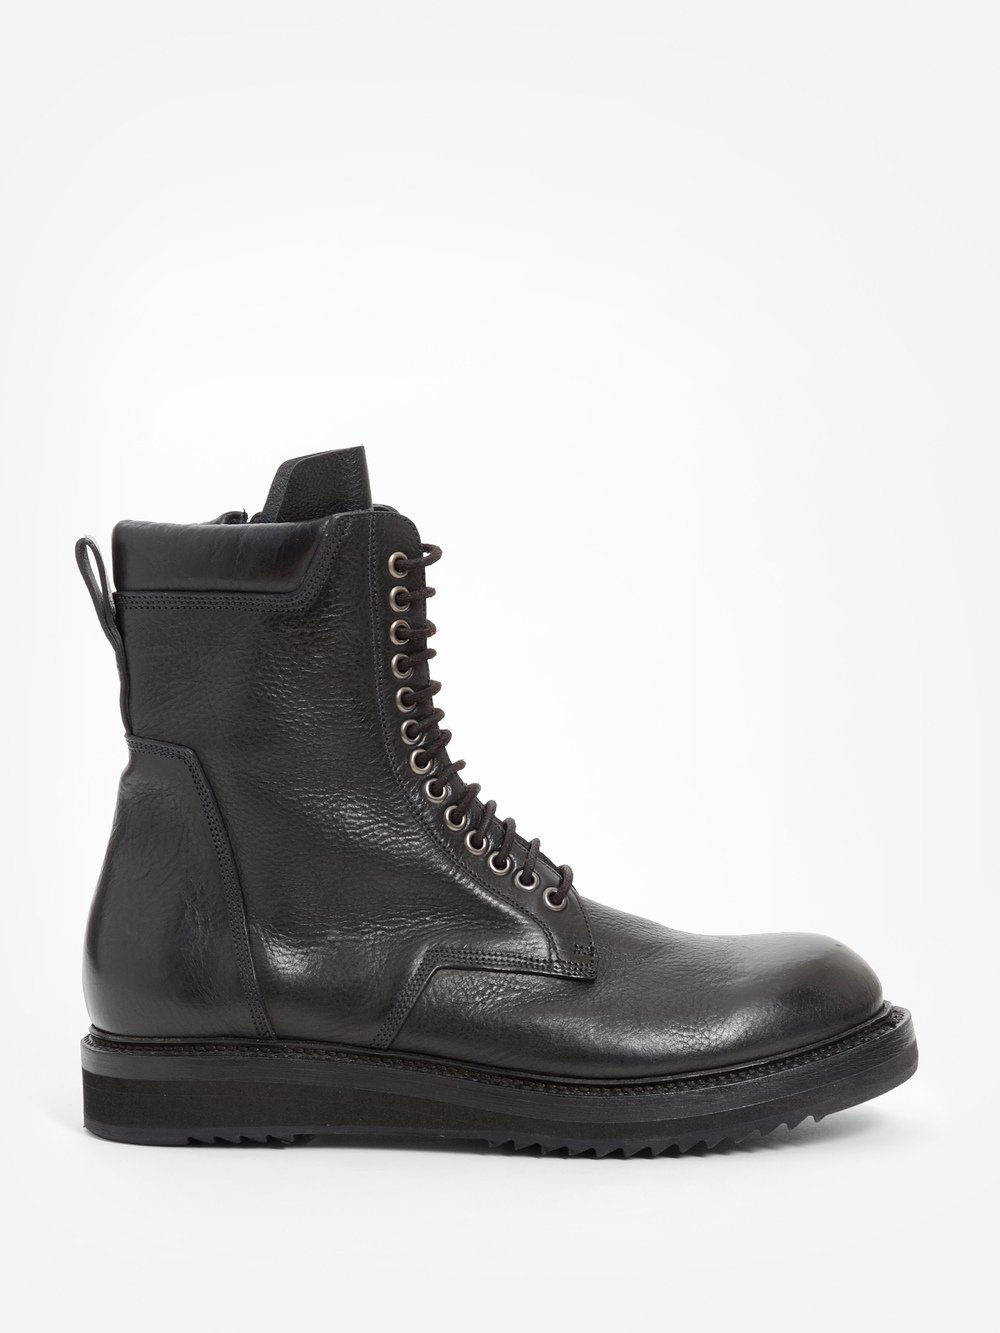 Black Low Army Classic Creeper Boots